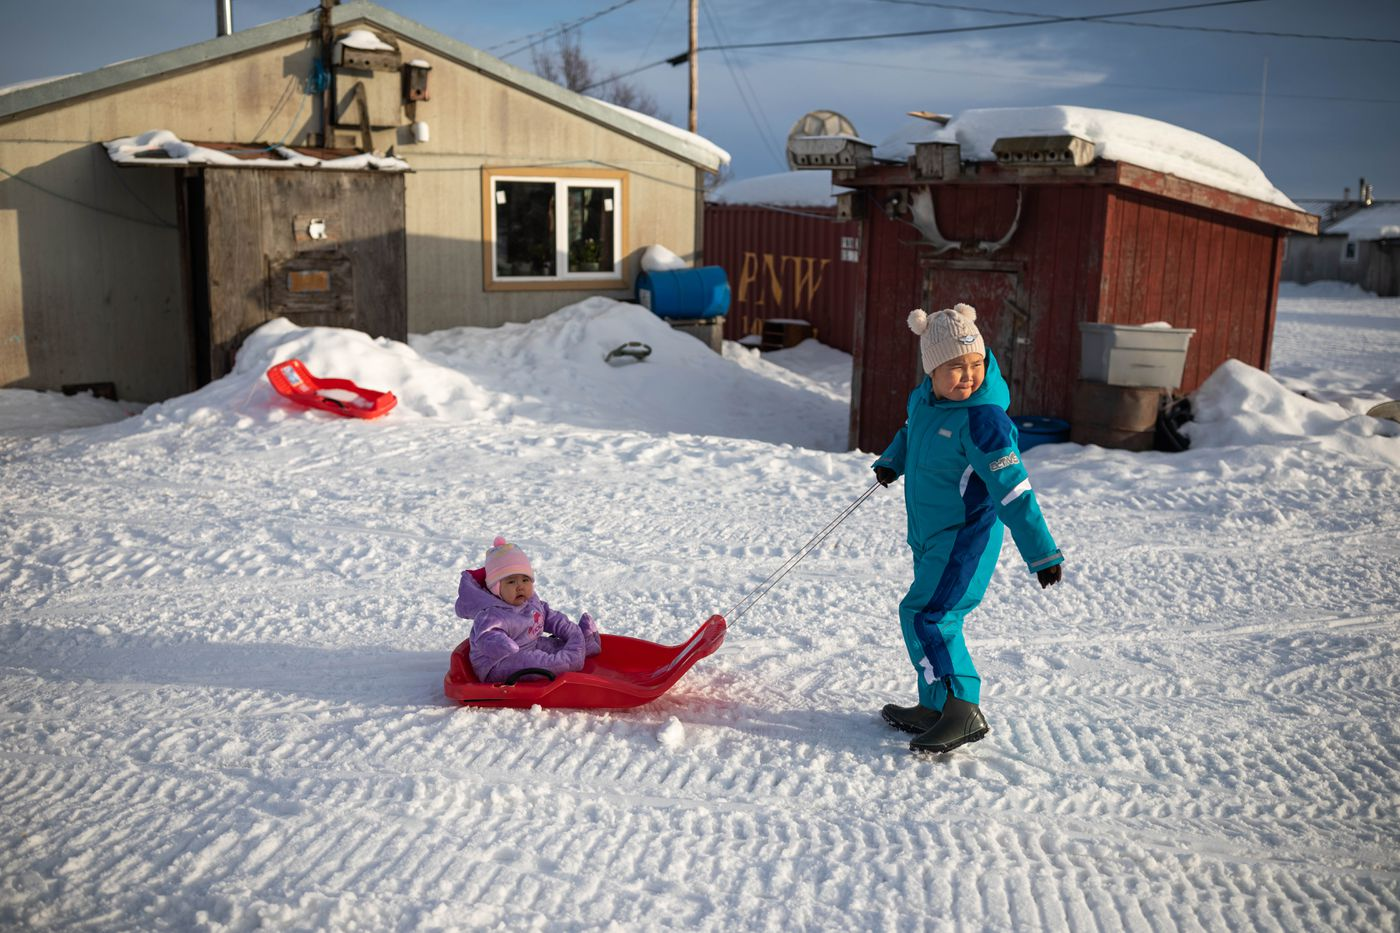 Isabella Takumjenak, 7, pulls her sister Rosetta Kozevmikoff, 10 months, on a sled outside their family home on March 7, 2019 in Russian Mission. (Loren Holmes / ADN)